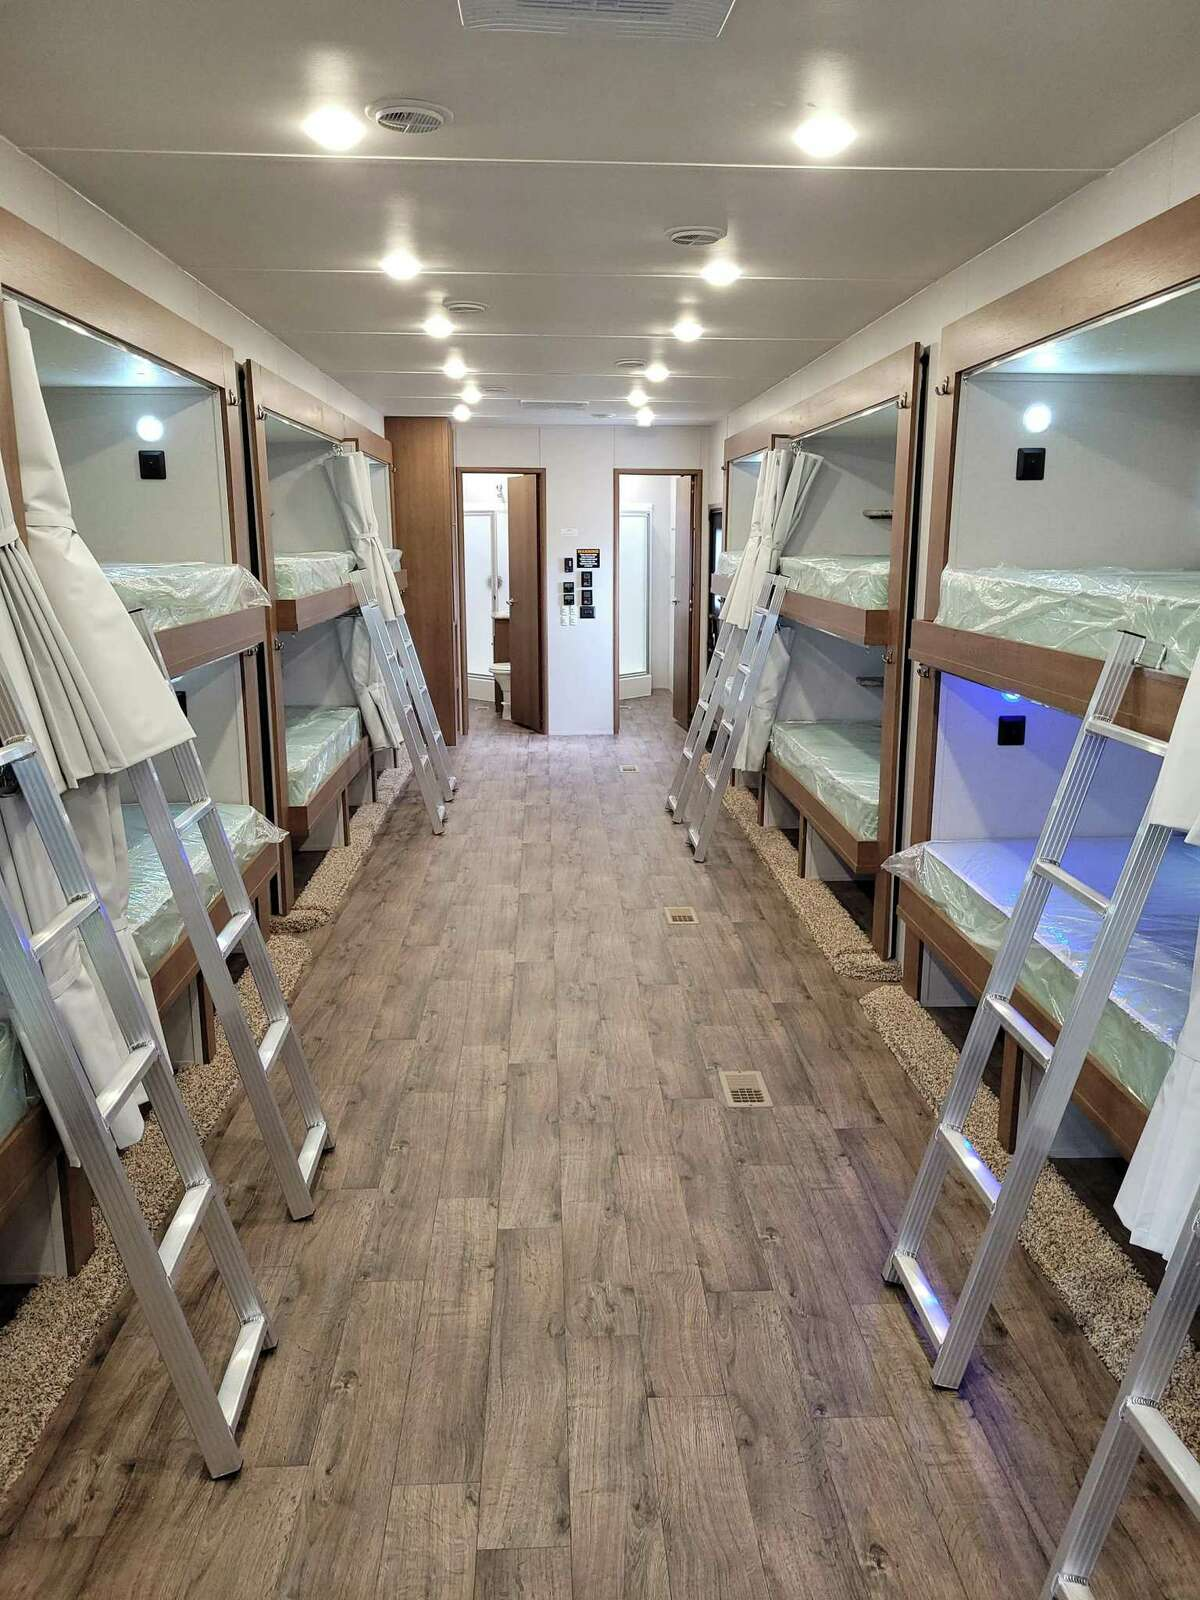 A 20 bunk unit that has individual amenities for each person and extra room so that crews do not feel cramped.